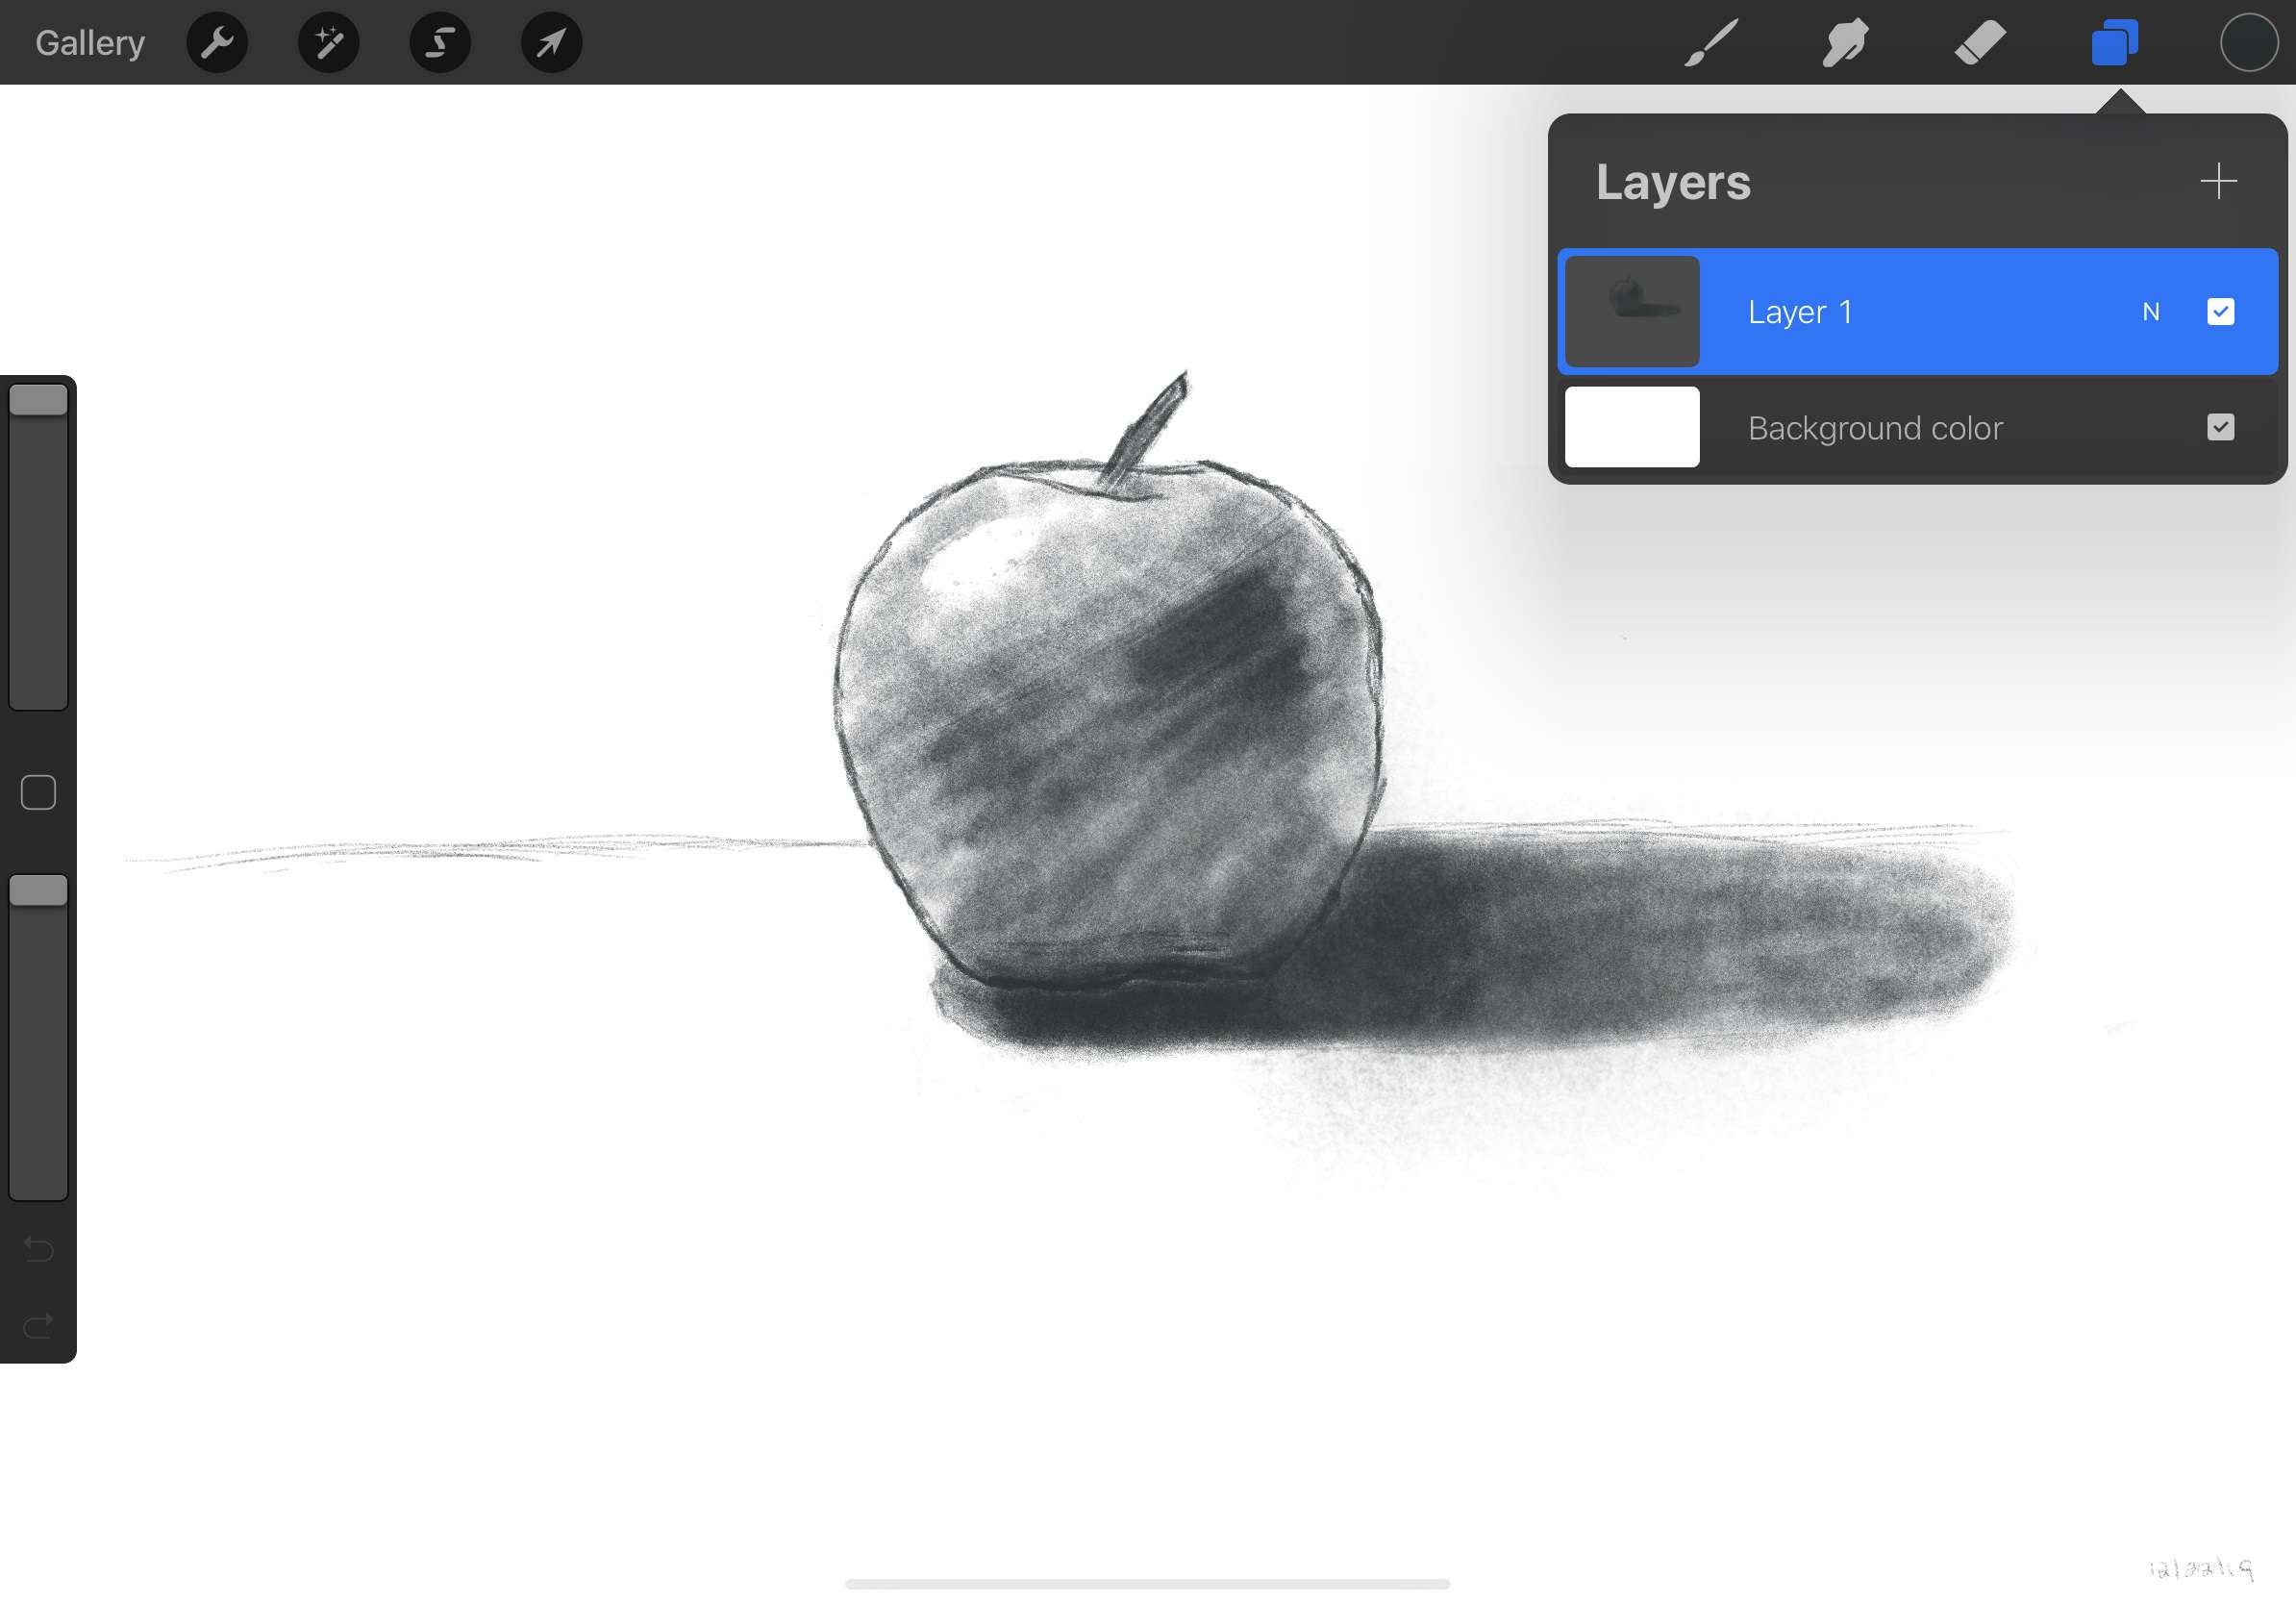 A sketch of an apple in Procreate. The layers menu is open.